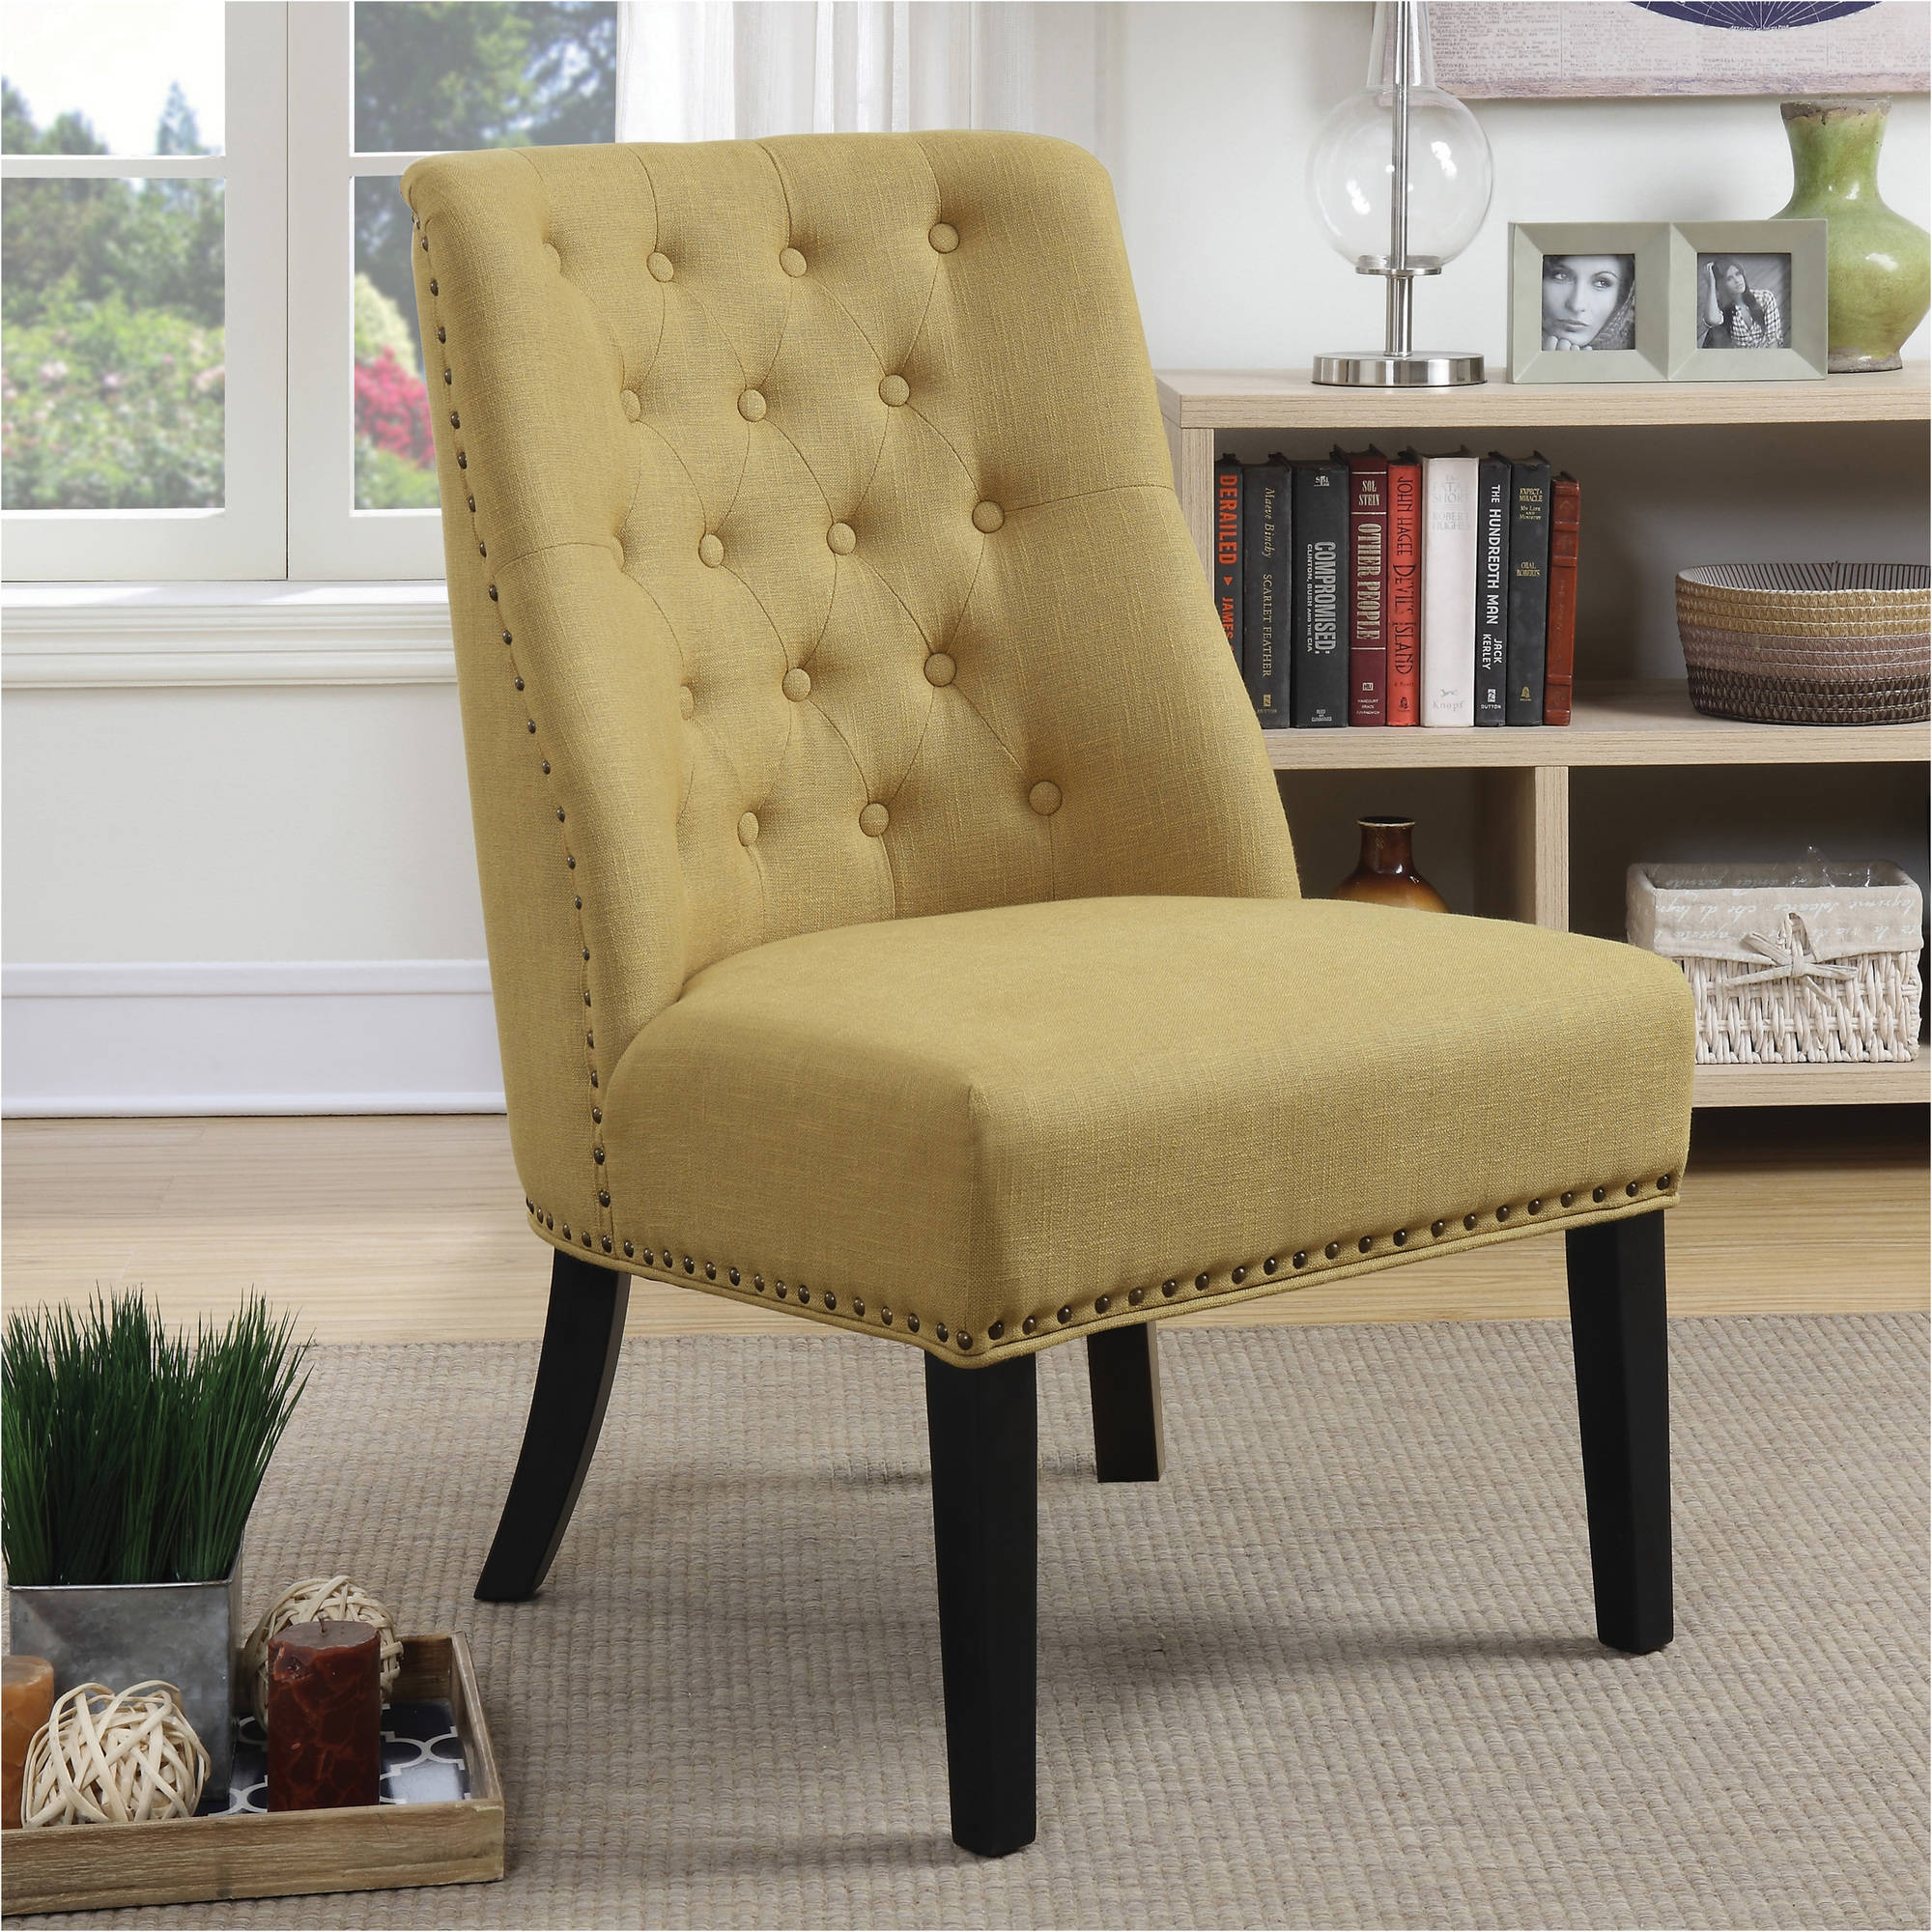 Coaster Accent Chair, Yellow Linen-Like Fabric